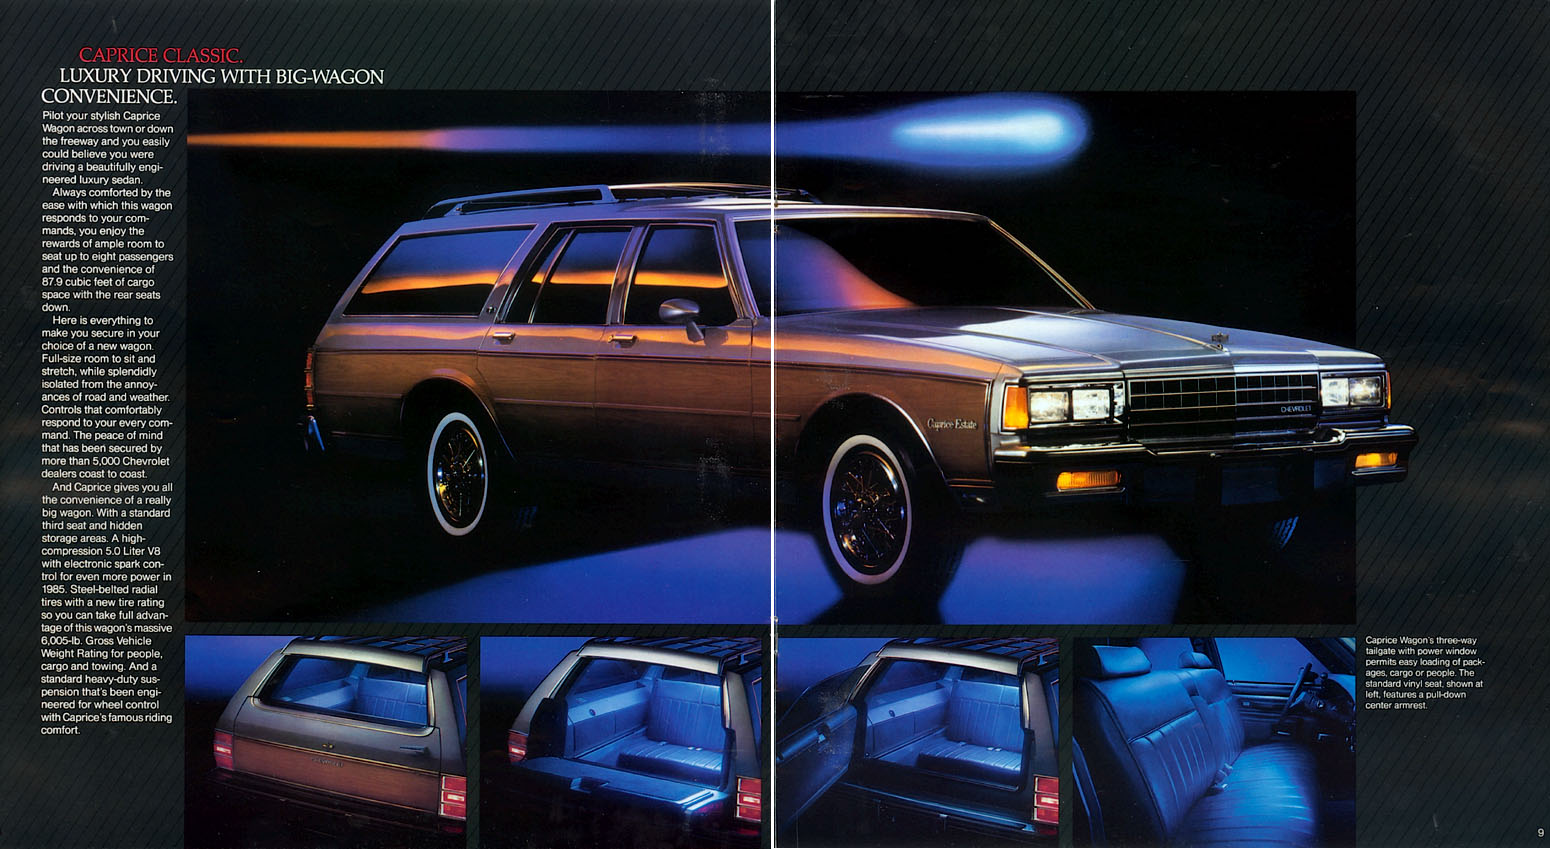 1985 Caprice Estate- 1988 (79-91) Ford LTD Country Squire wagon.